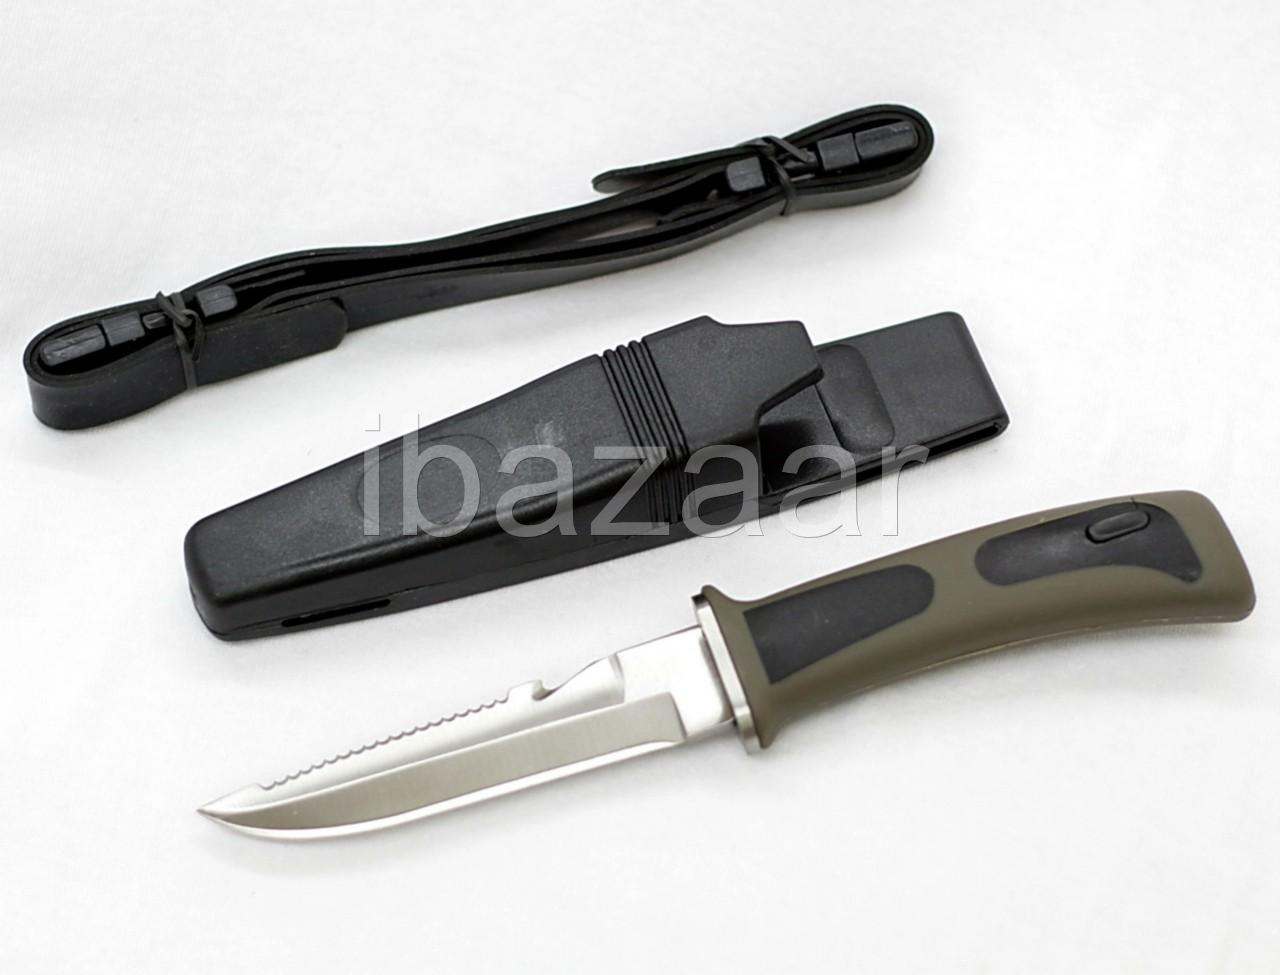 STAINLESS-STEEL-RUBBER-HANDLE-DIVE-KNIFE-Scuba-Diving-Scabbard-Snorkel-Hunting